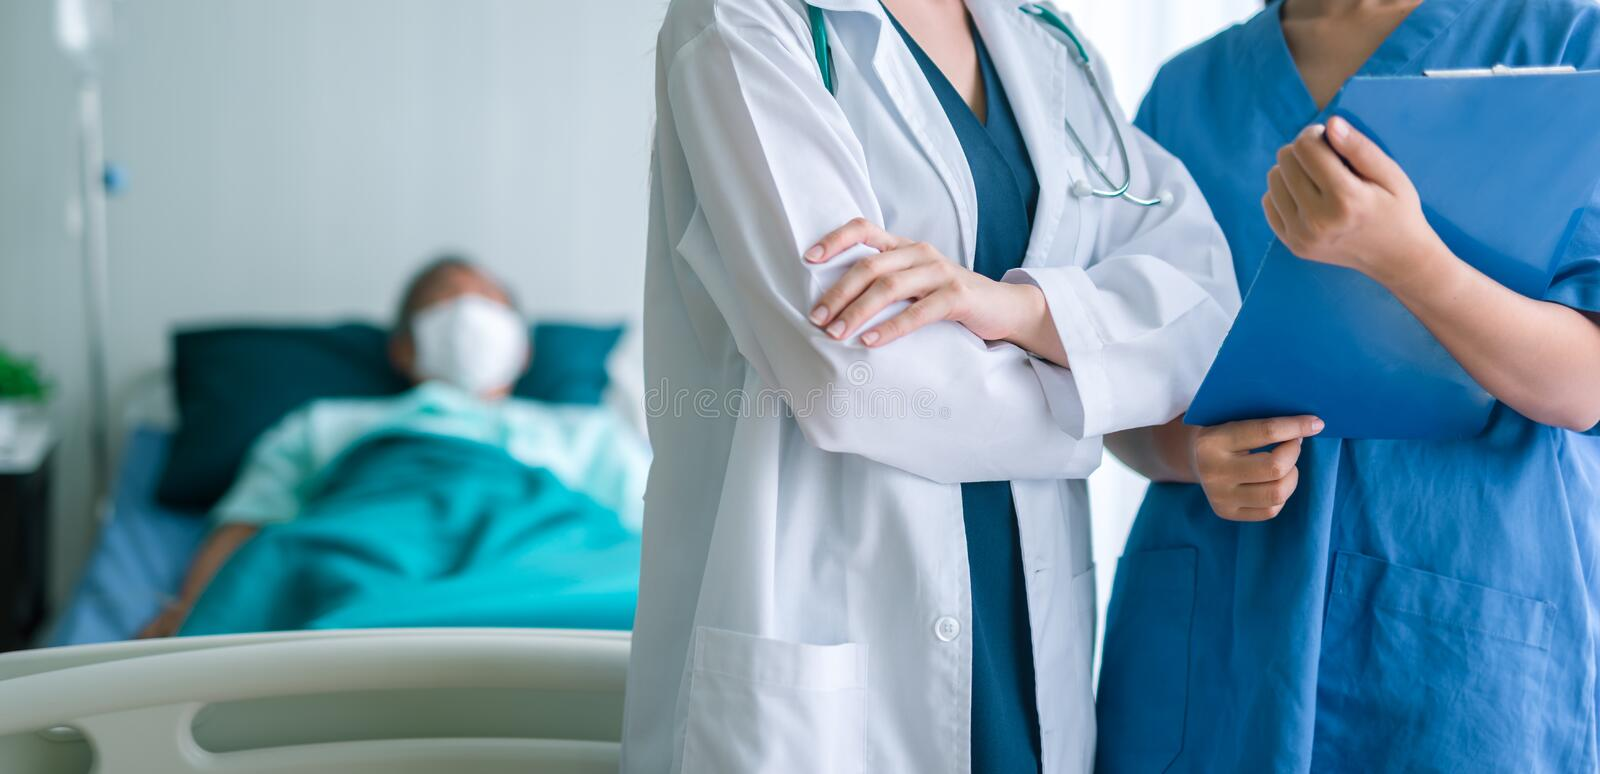 Doctor and Nurse medical team With Patient In Background. royalty free stock photo